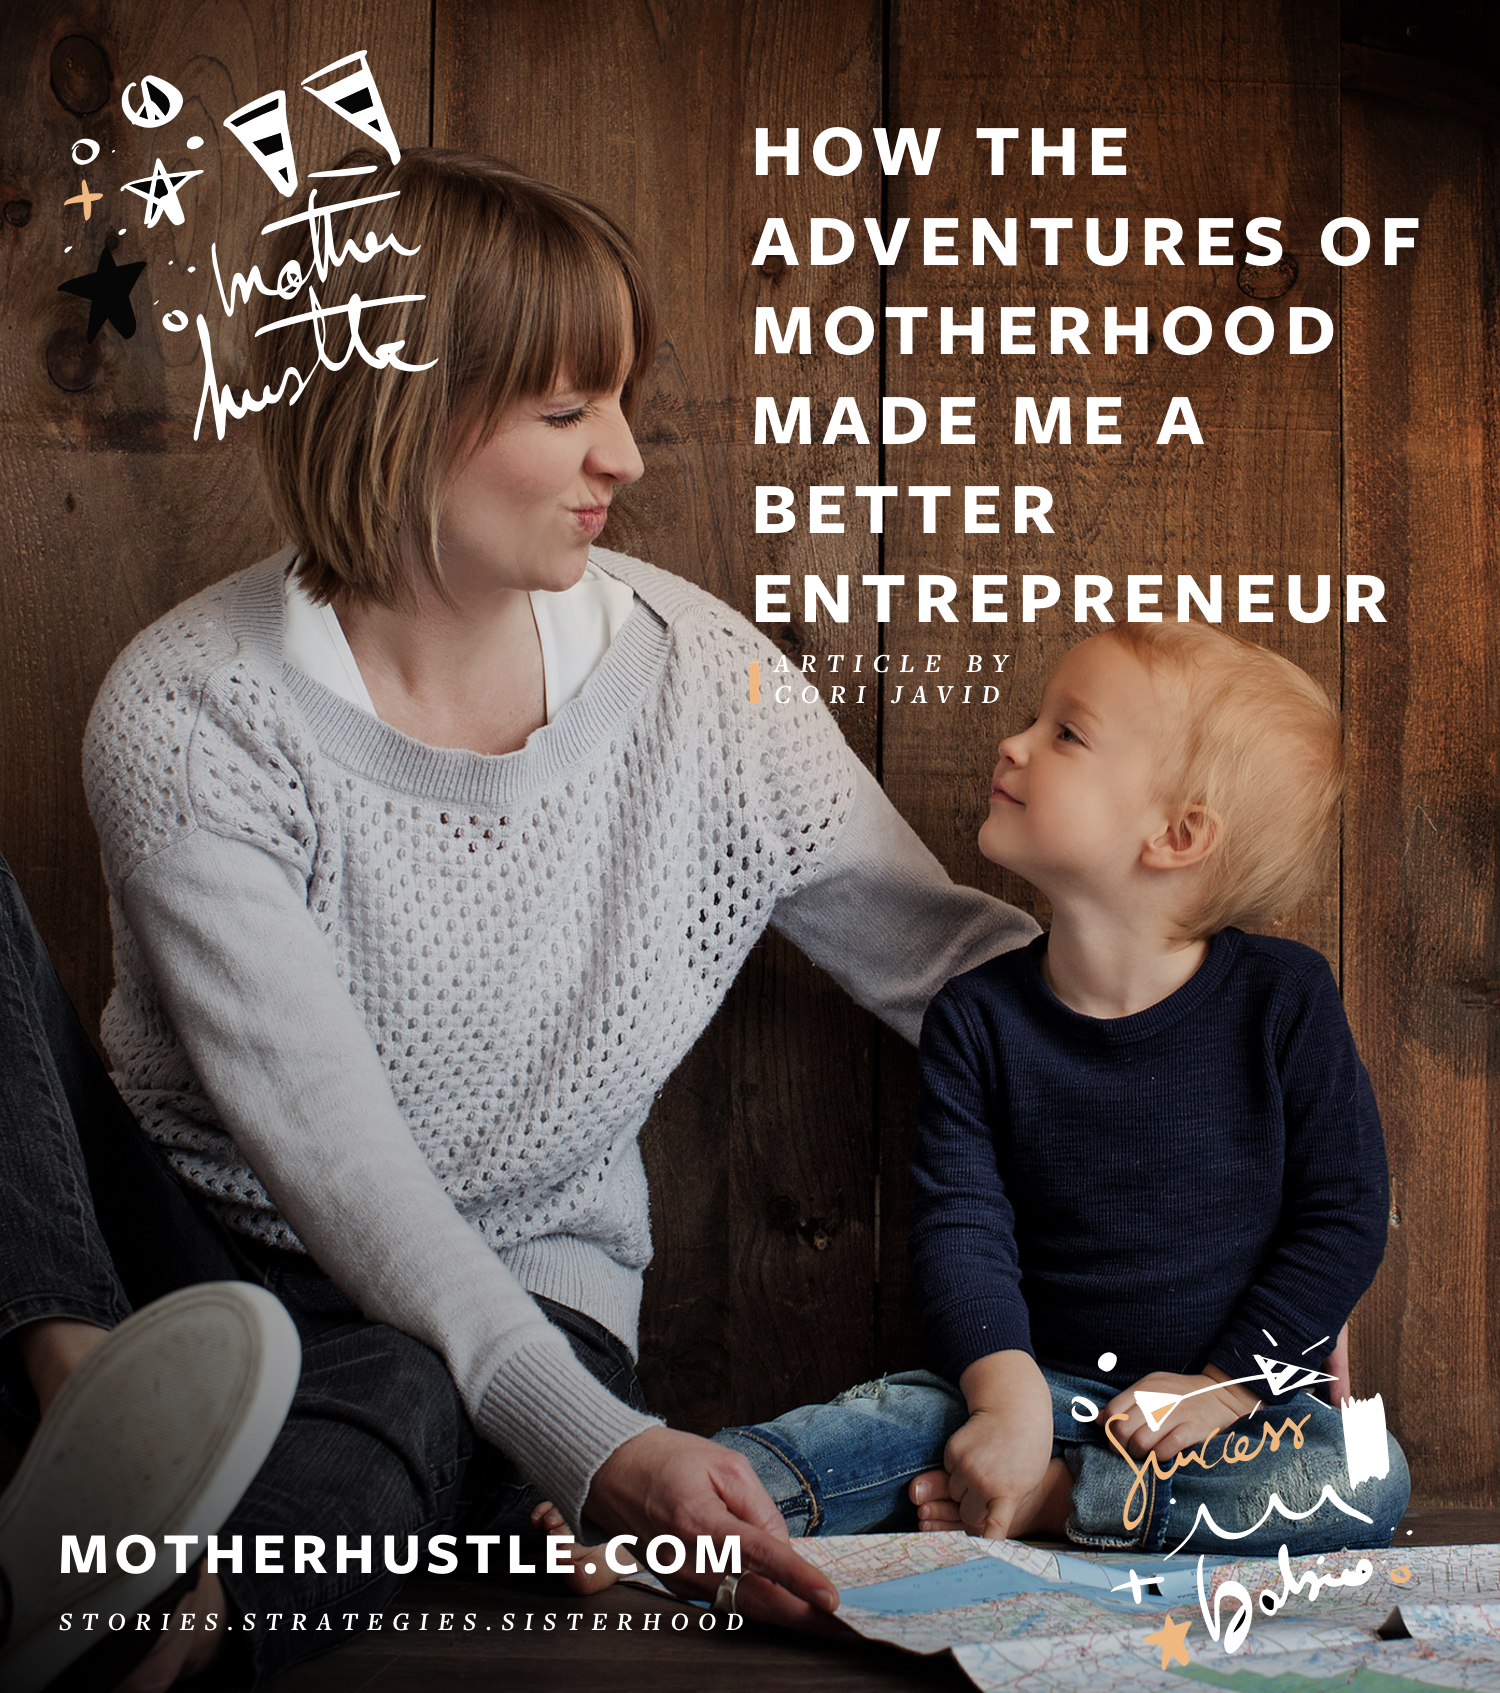 How the Adventures of Motherhood Made Me a Better Entrepreneur - by Cori Javid for MotherHustle